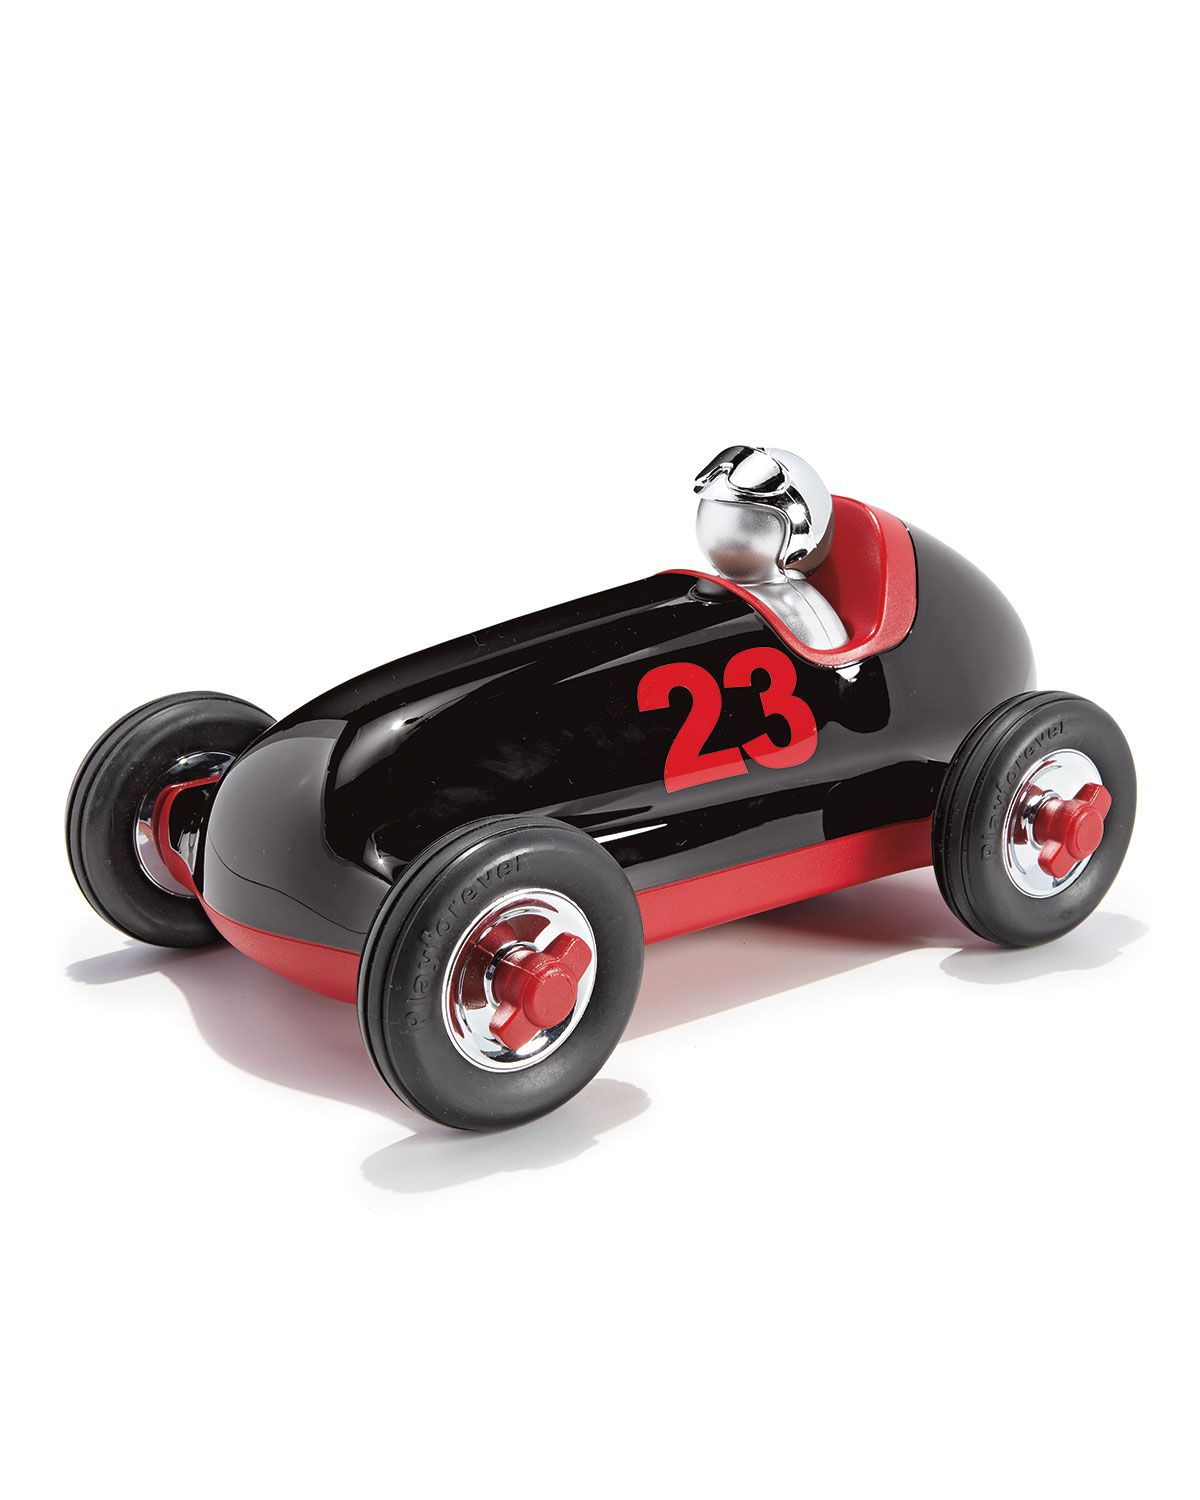 bruno push car blackred  playforever toys  miniatur  - bruno push car blackred  playforever toys